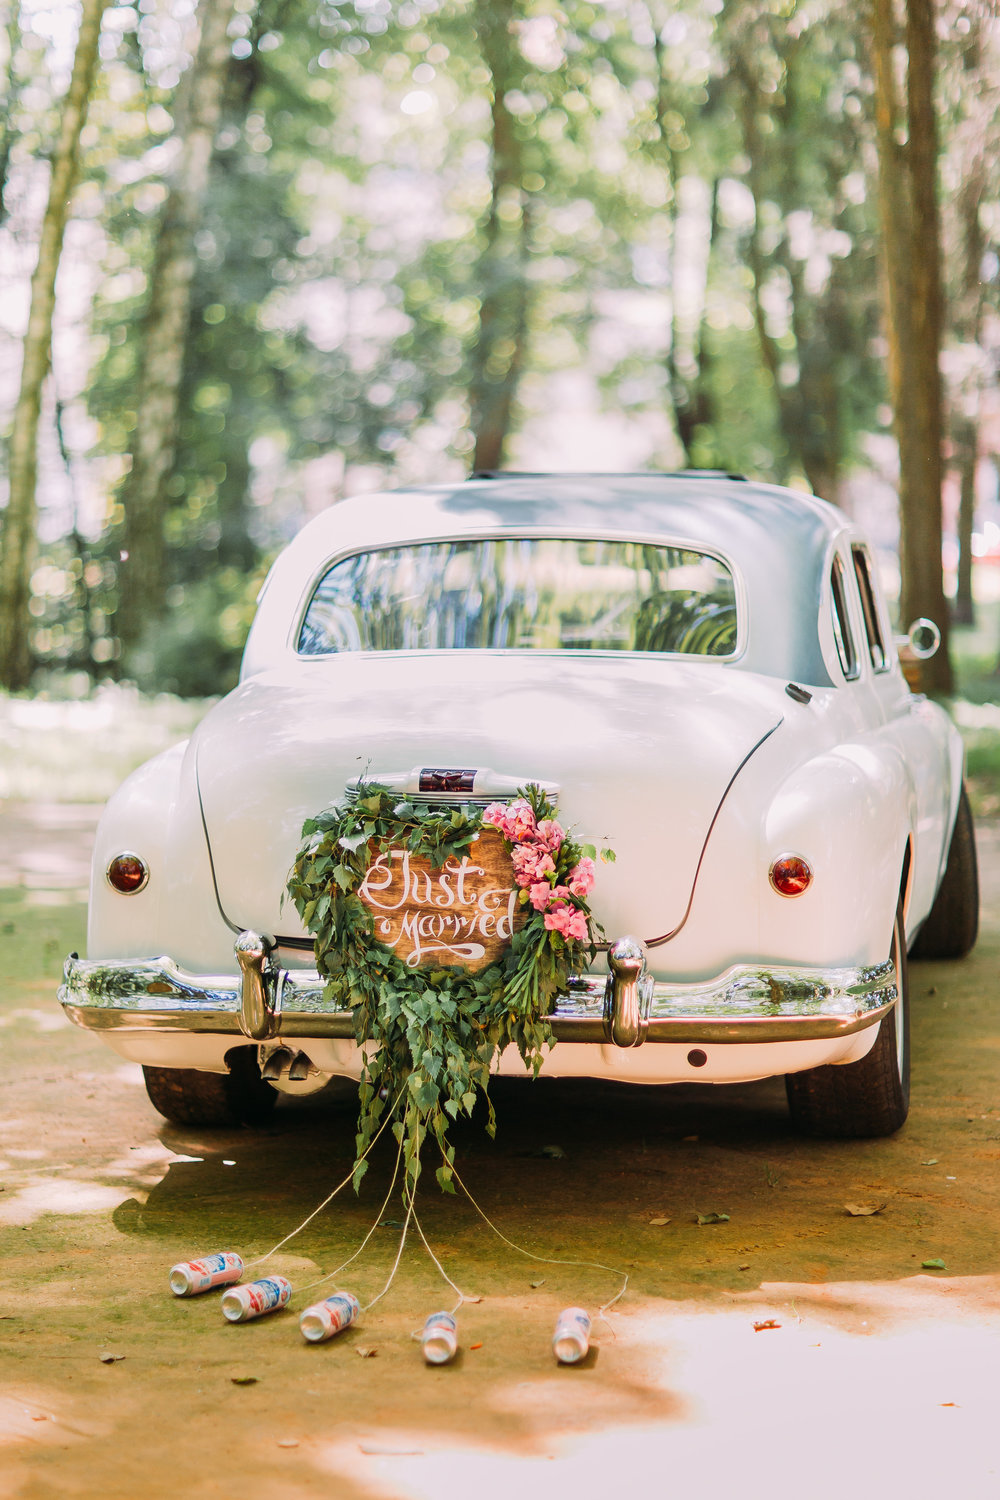 Cars - From the classic to the modern, from the tame to the wild, Pride Wedding & Events endeavour to deliver you in style. Looking Good and arriving in style compliment many aspects of a wedding, including the making of brilliant photography.